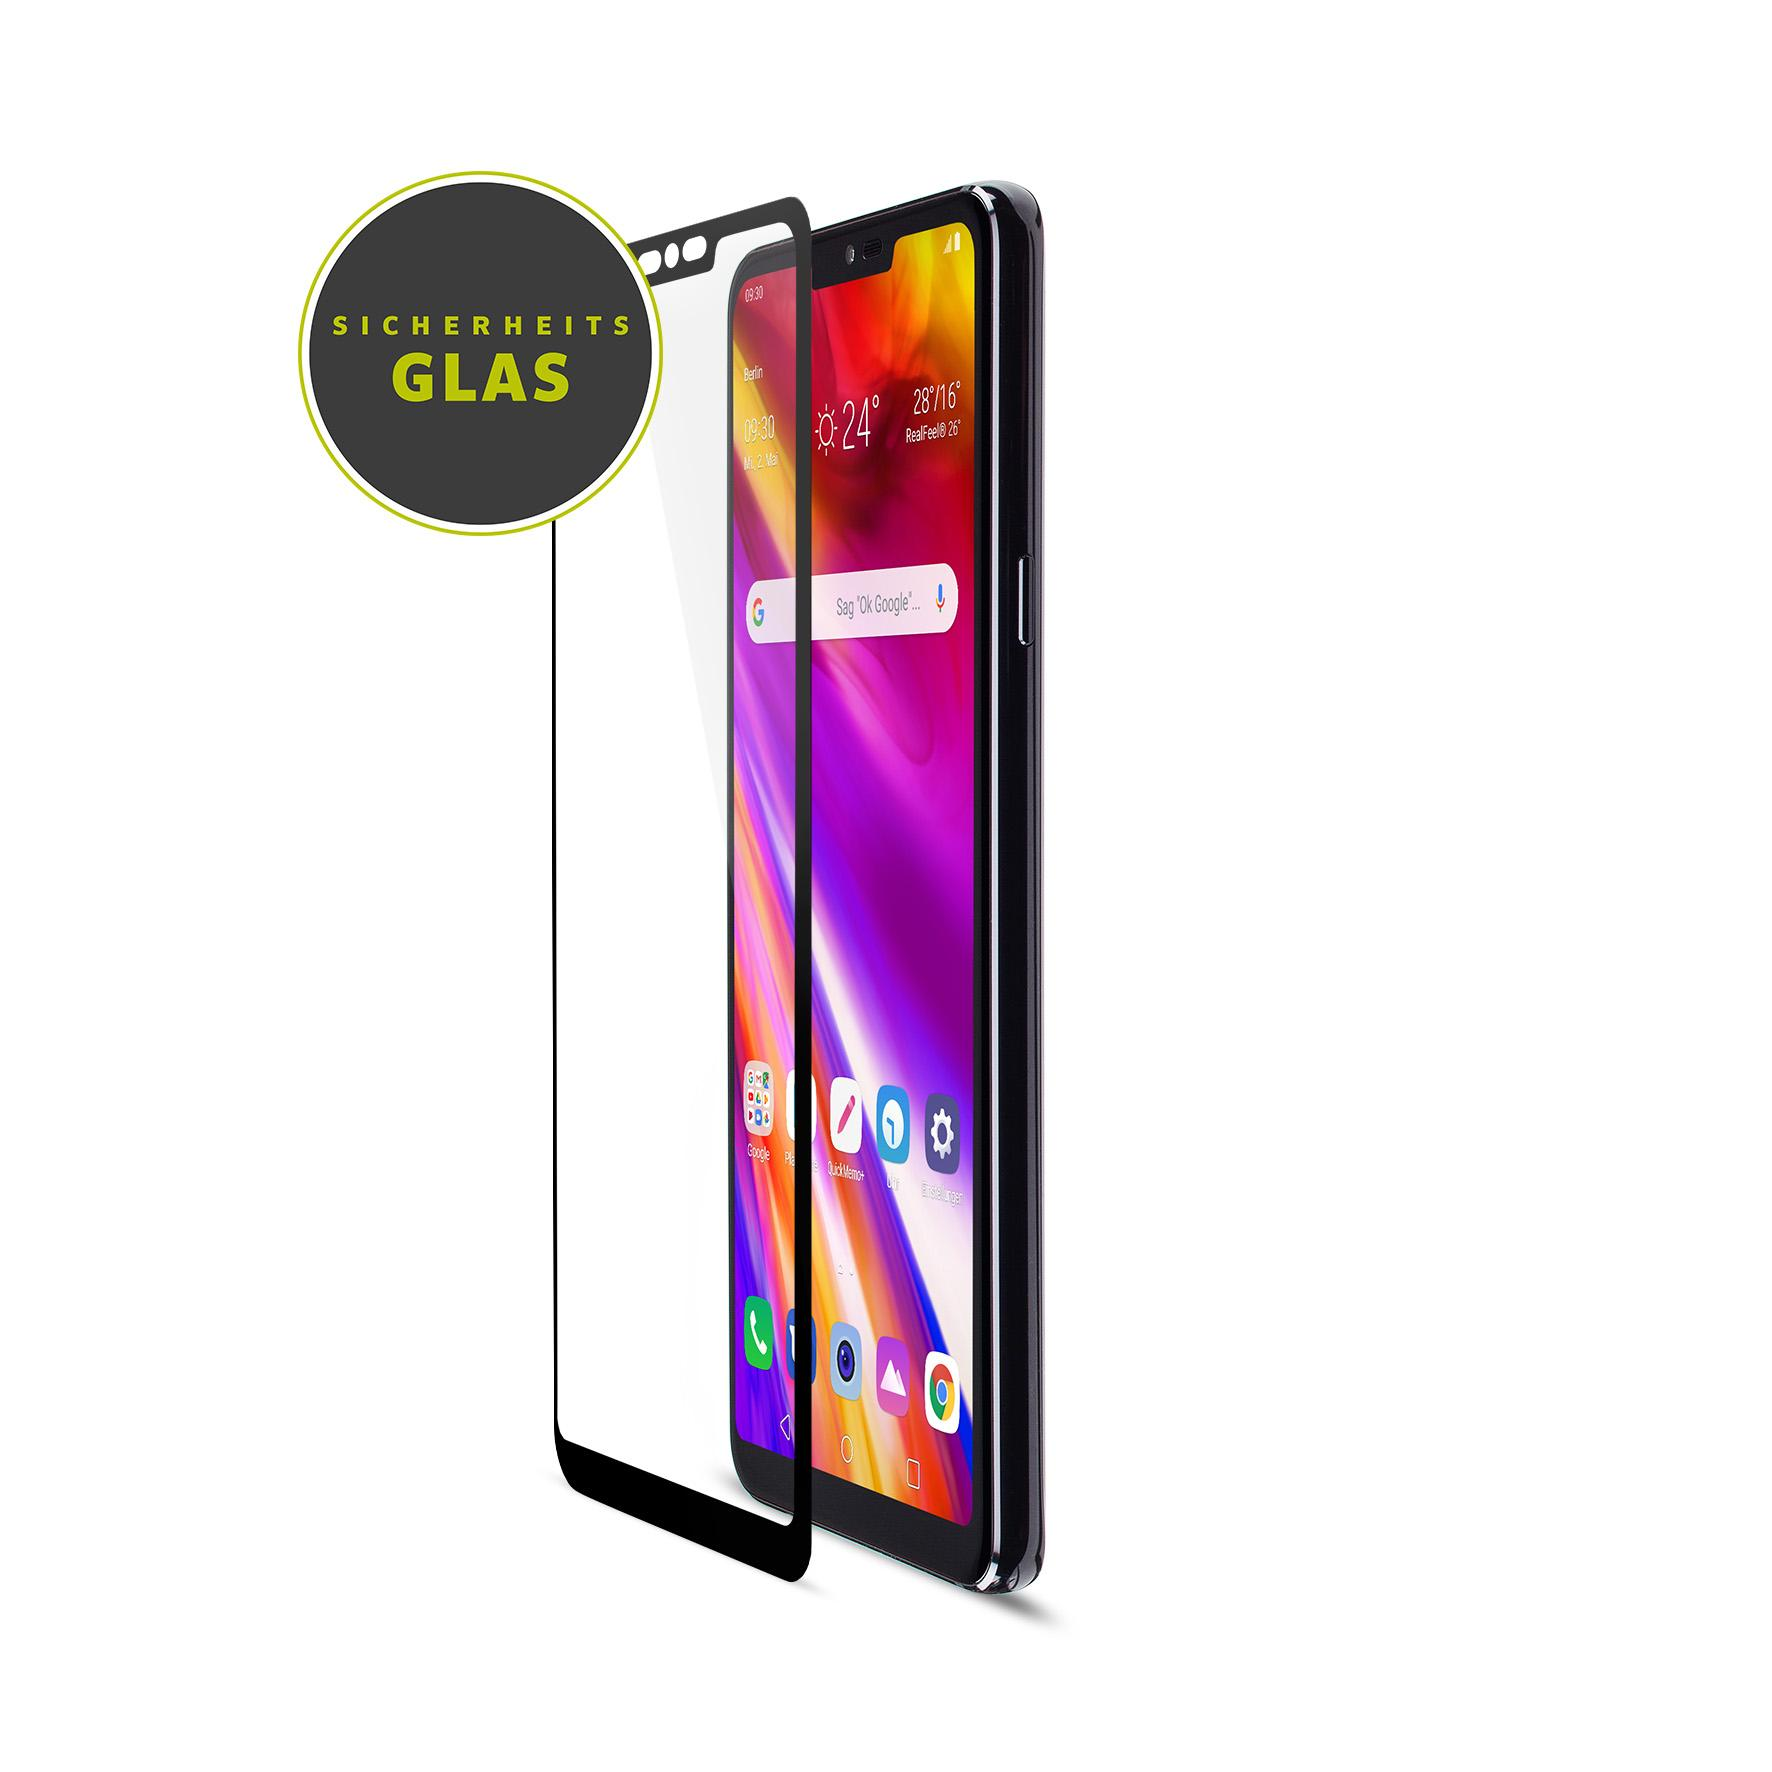 Artwizz CurvedDisplay Glass Protection für LG G7 ThinQ G7 ThinQ LG Handy Zubehör